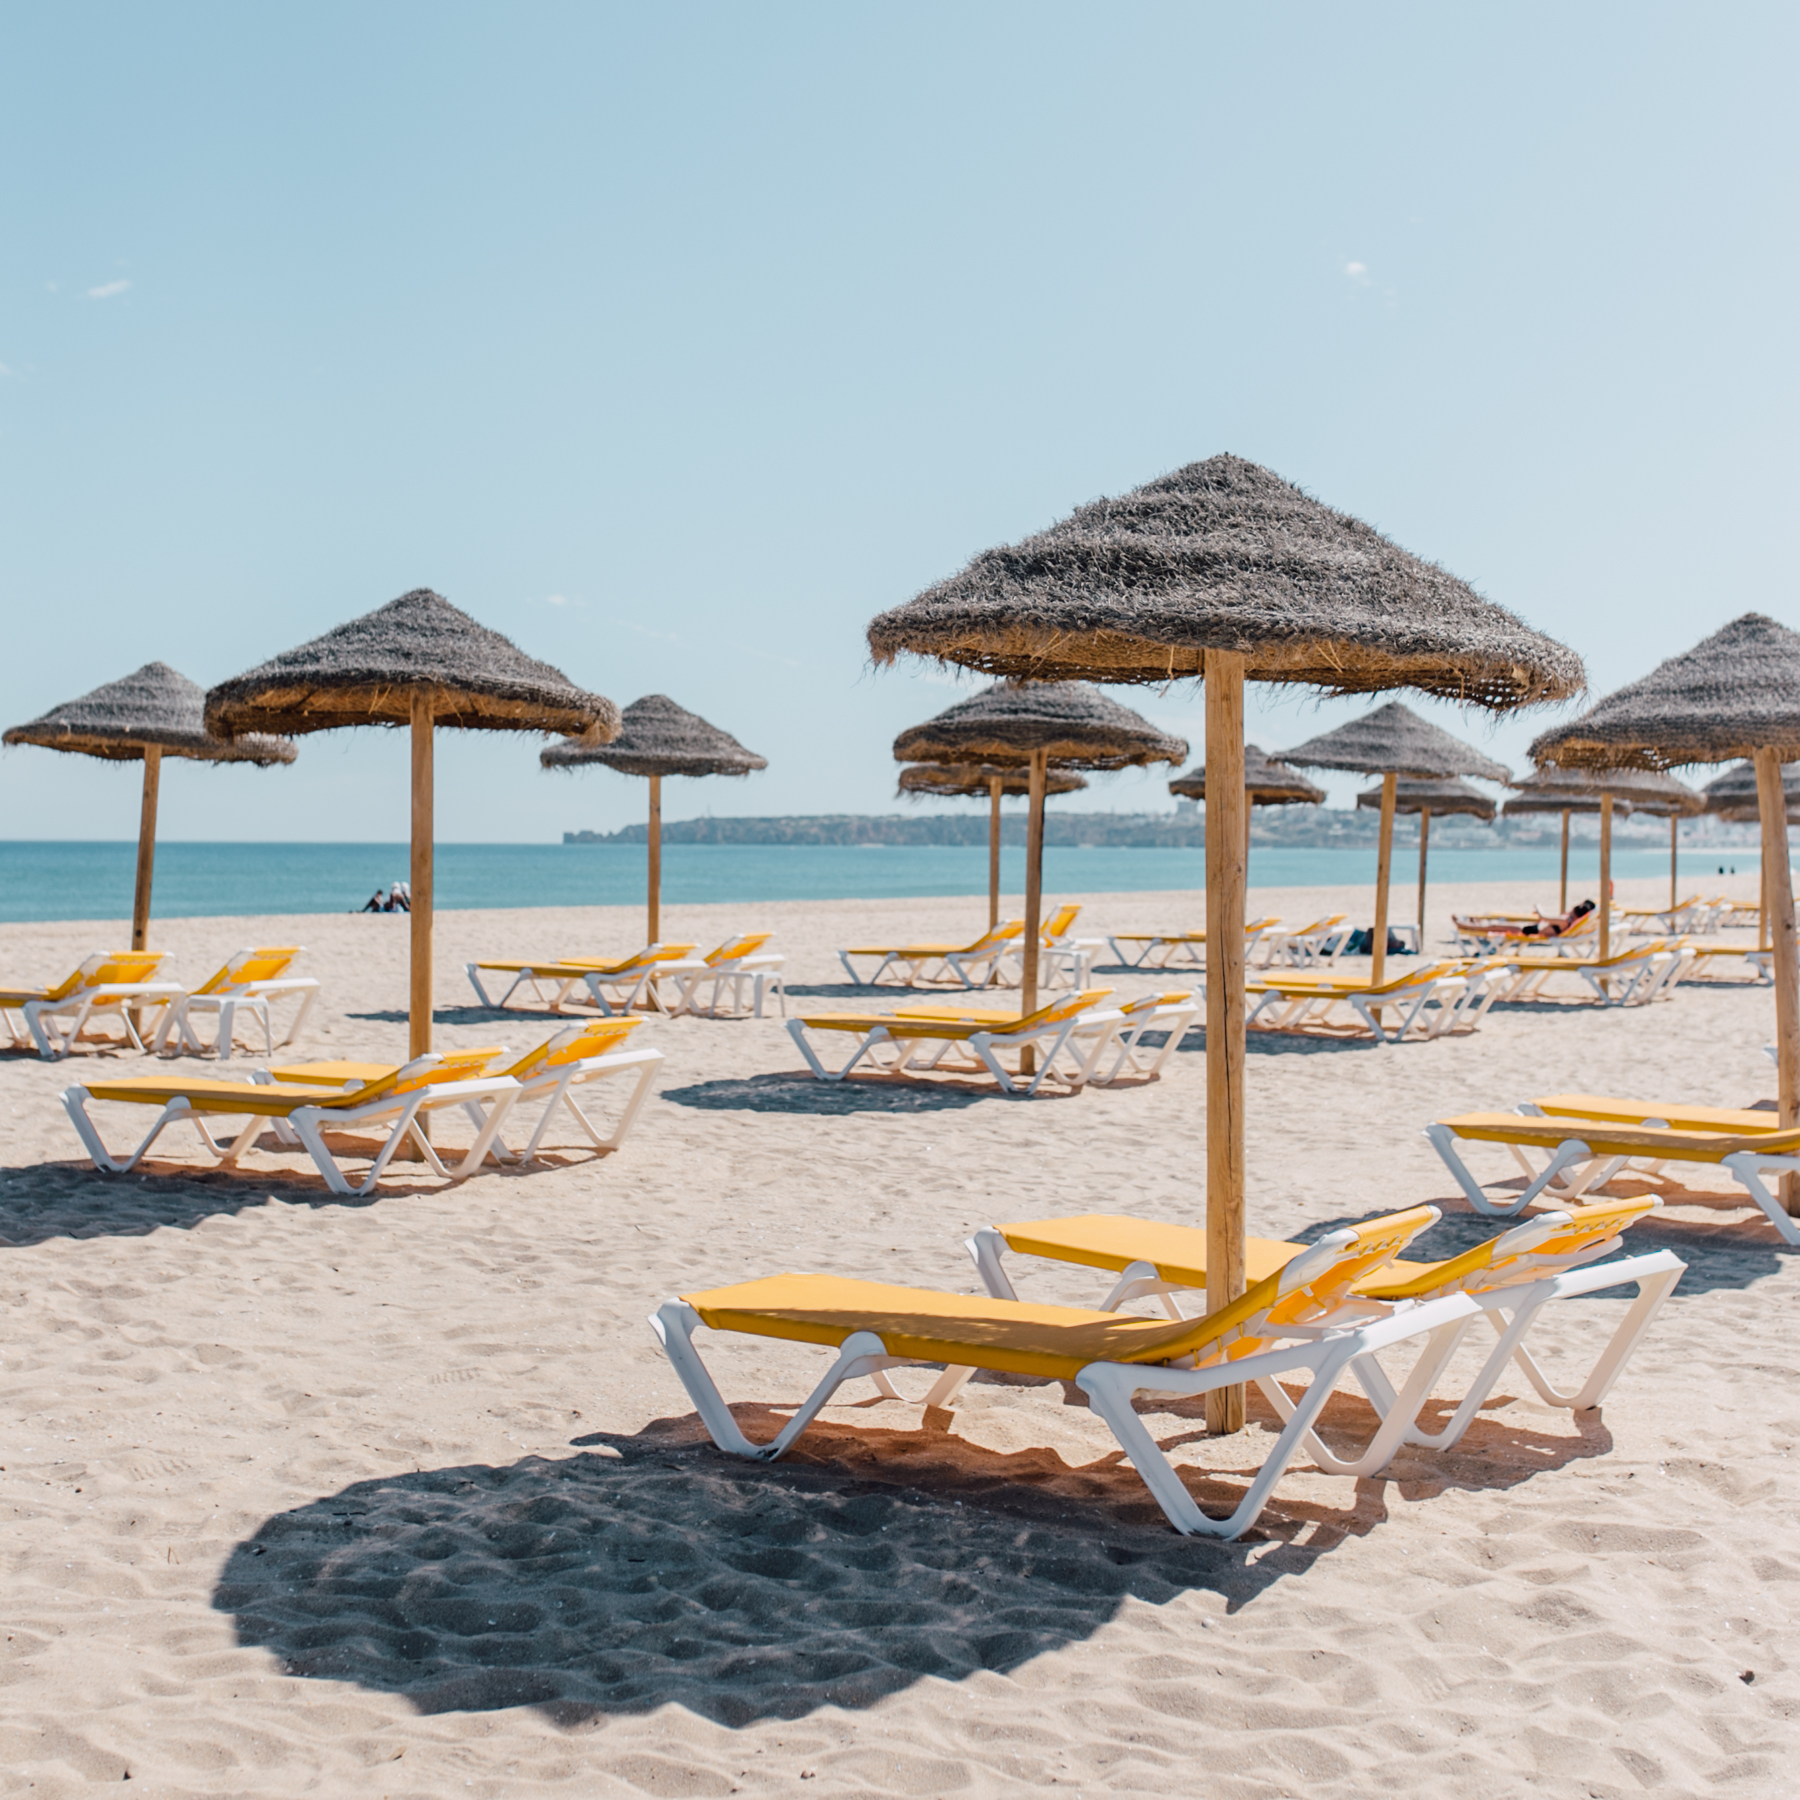 plenty of sun loungers at Meia Praia to hire for the day